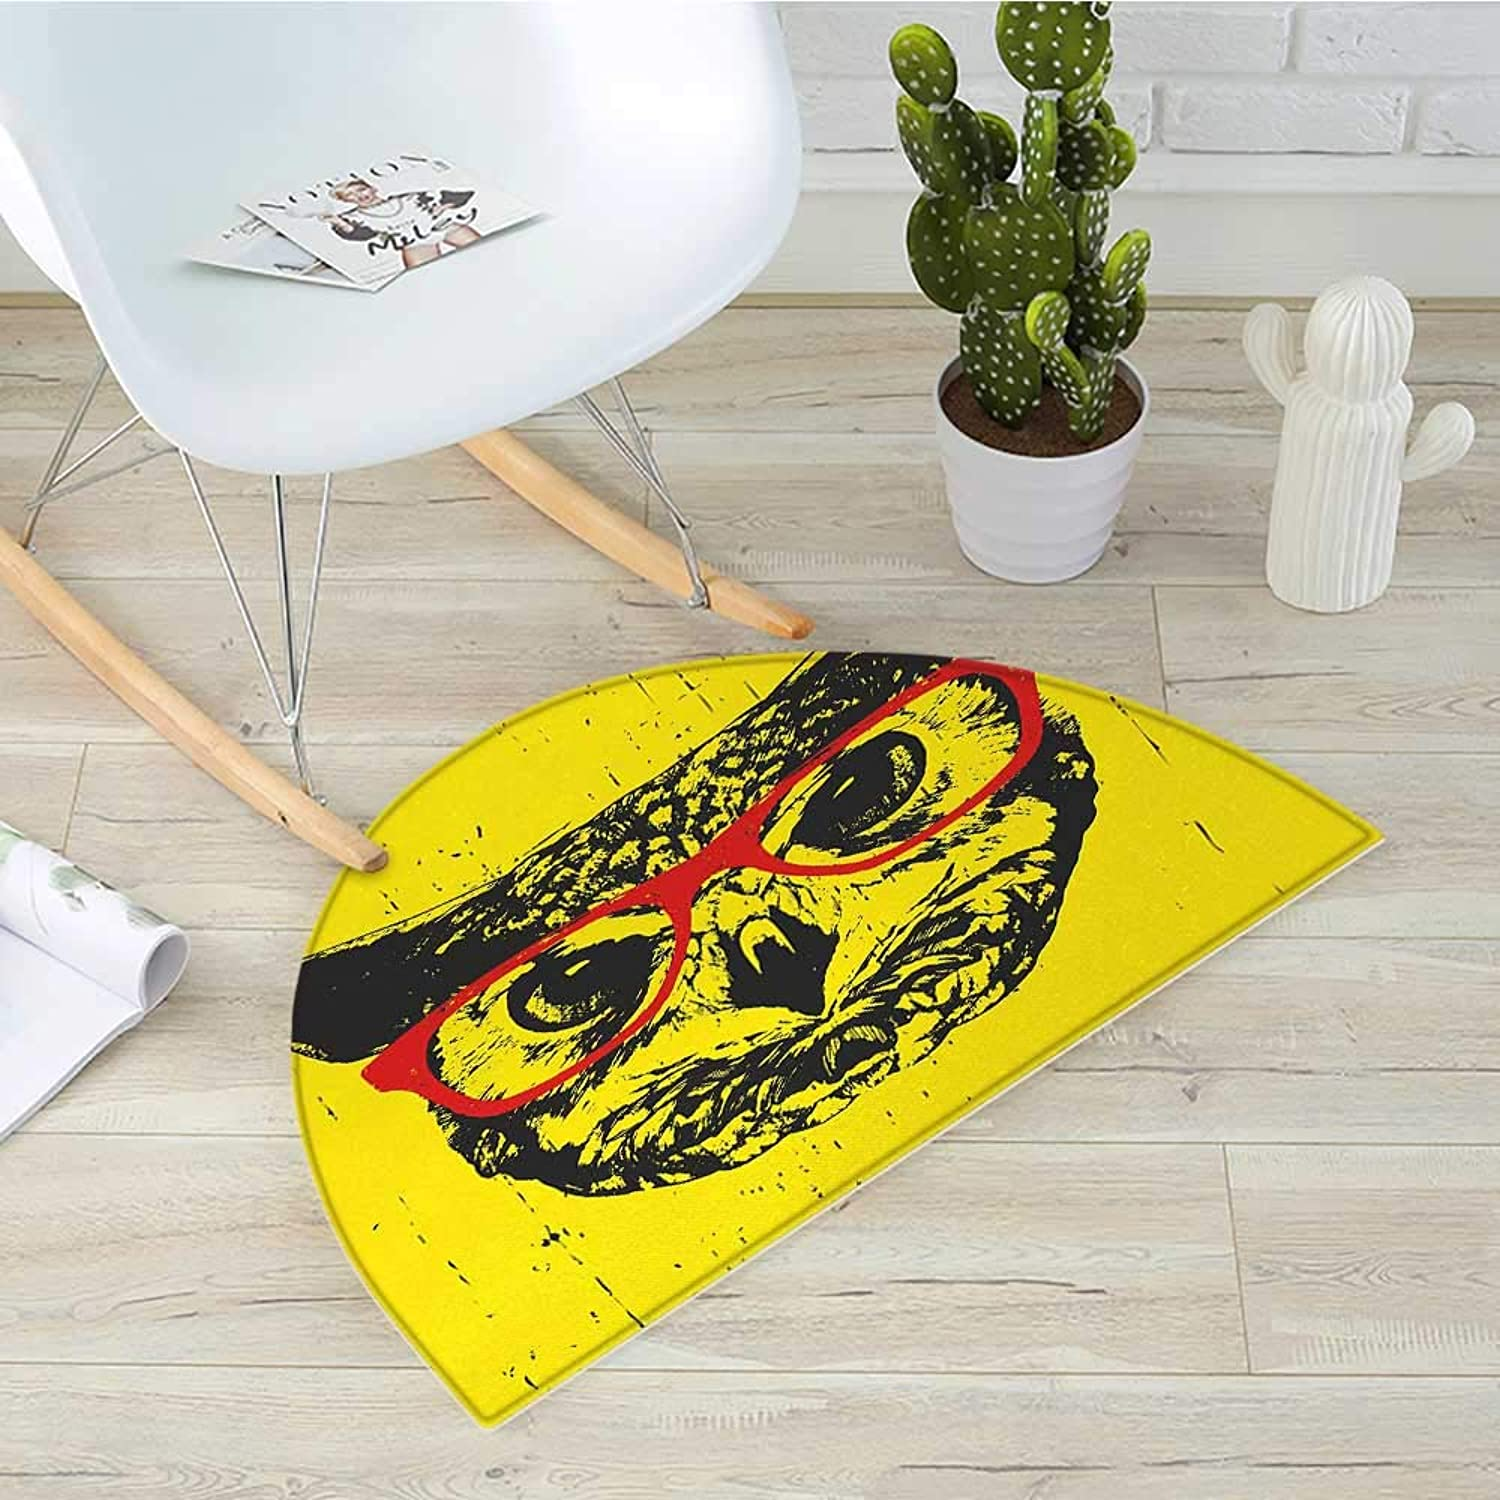 Modern Half Round Door mats Owl with Glasses Portrait Hipster Nocturnal Animal Grunge Humor Graphic Bathroom Mat H 31.5  xD 47.2  Dark Grey Yellow Red